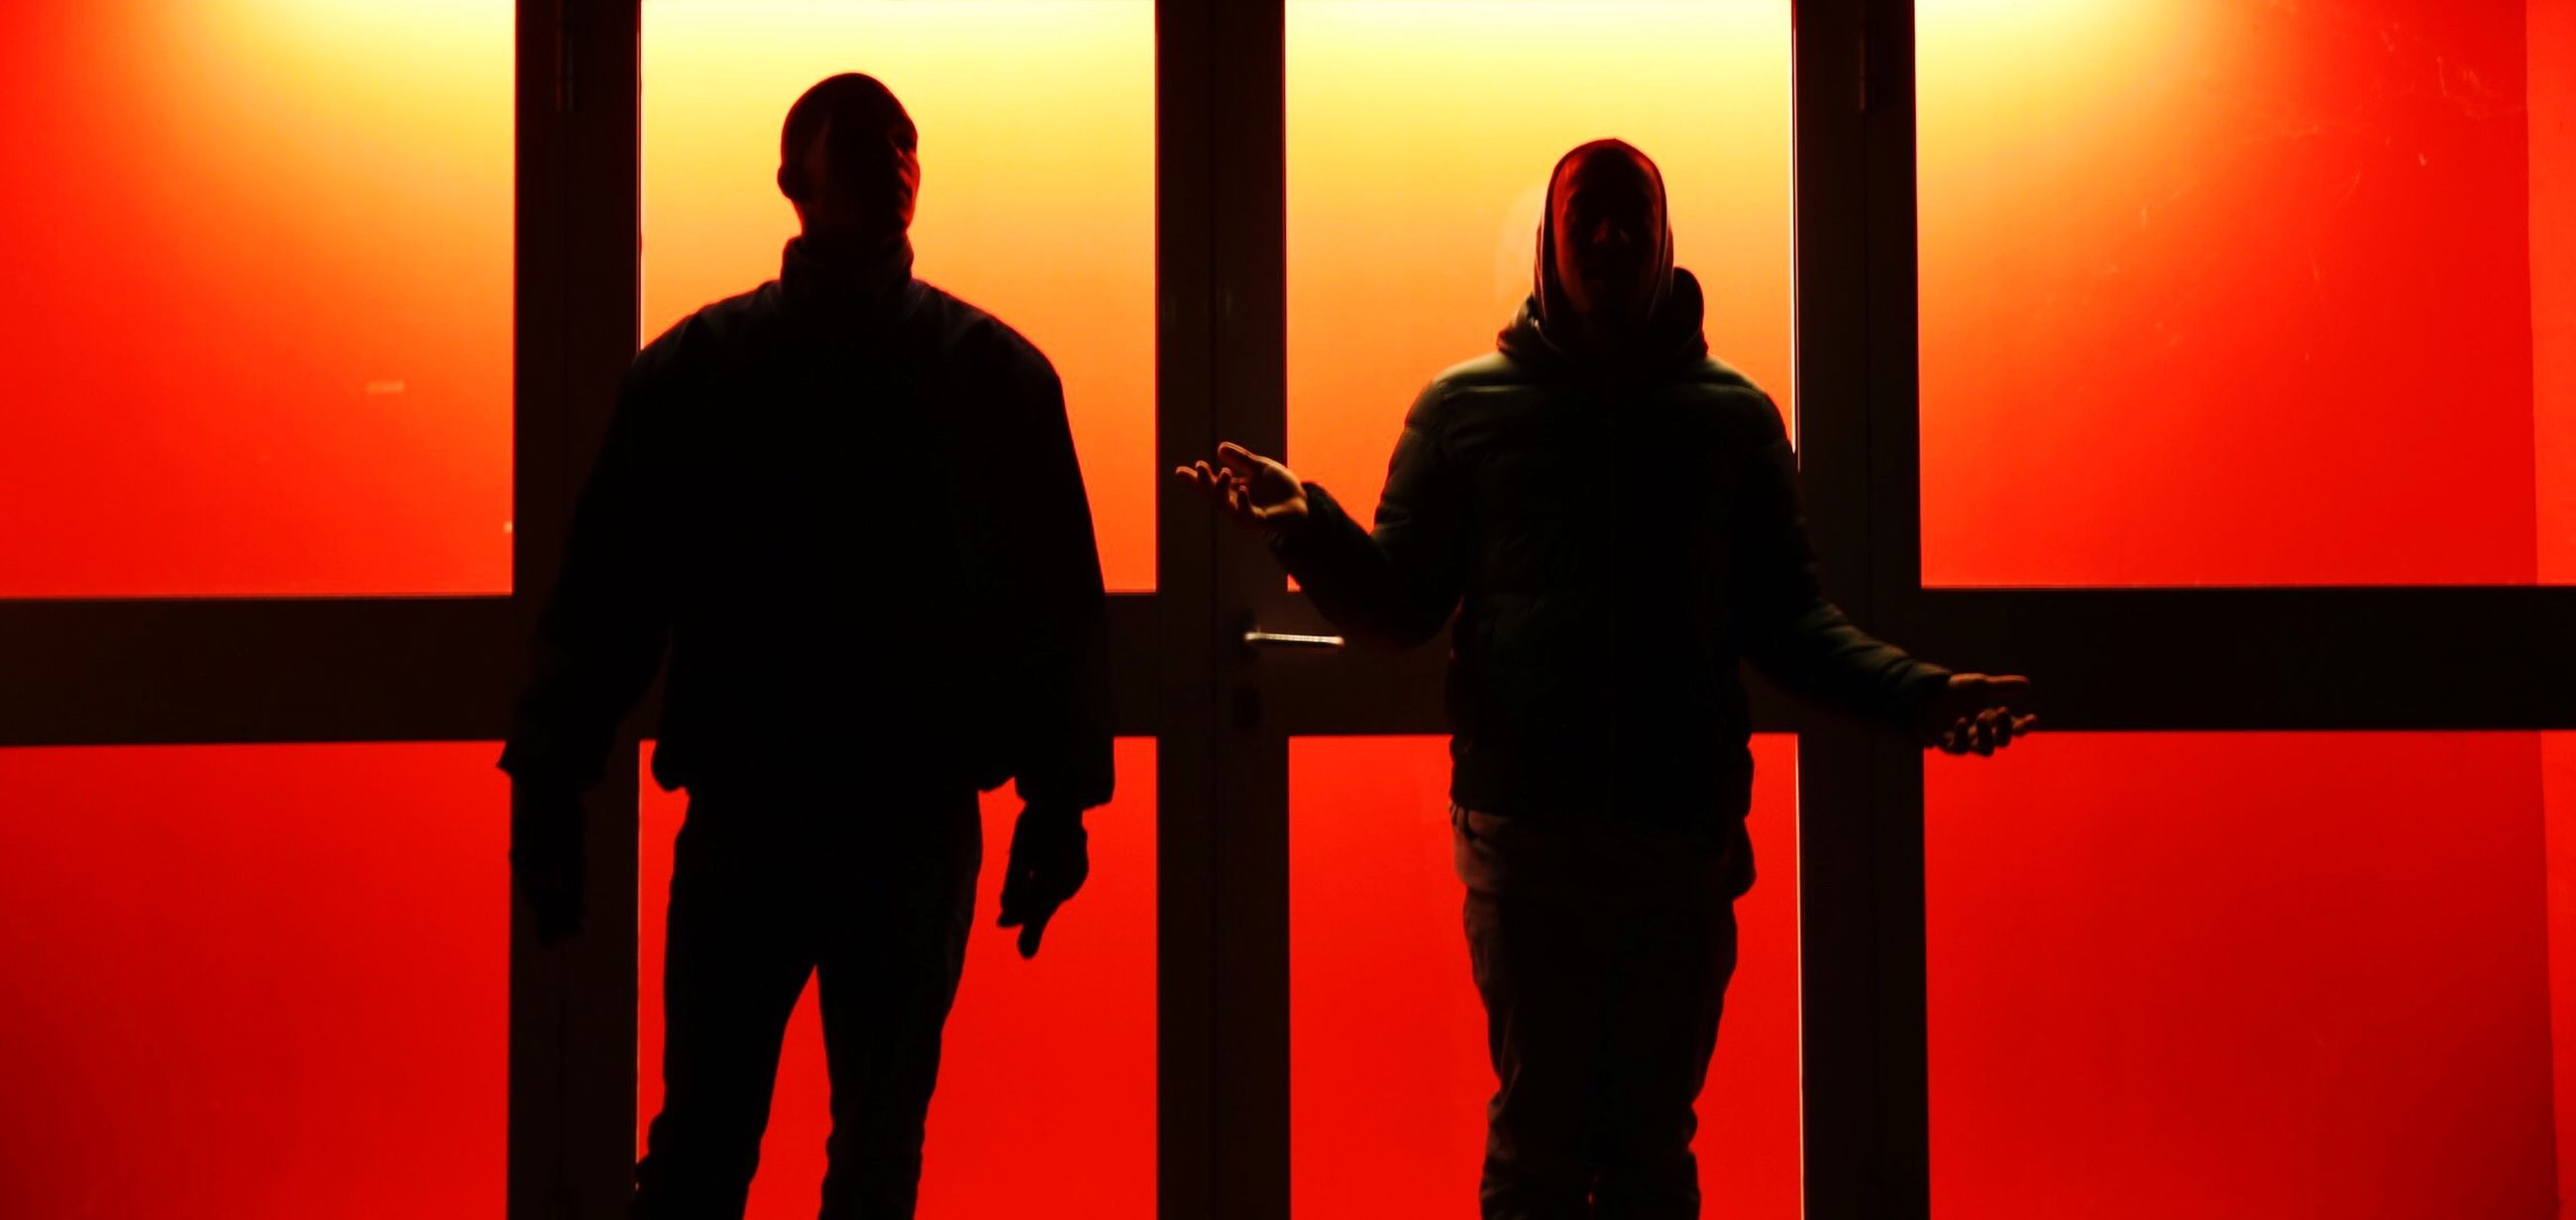 indoors, men, togetherness, lifestyles, silhouette, standing, red, love, bonding, person, rear view, leisure activity, three quarter length, sitting, orange color, communication, friendship